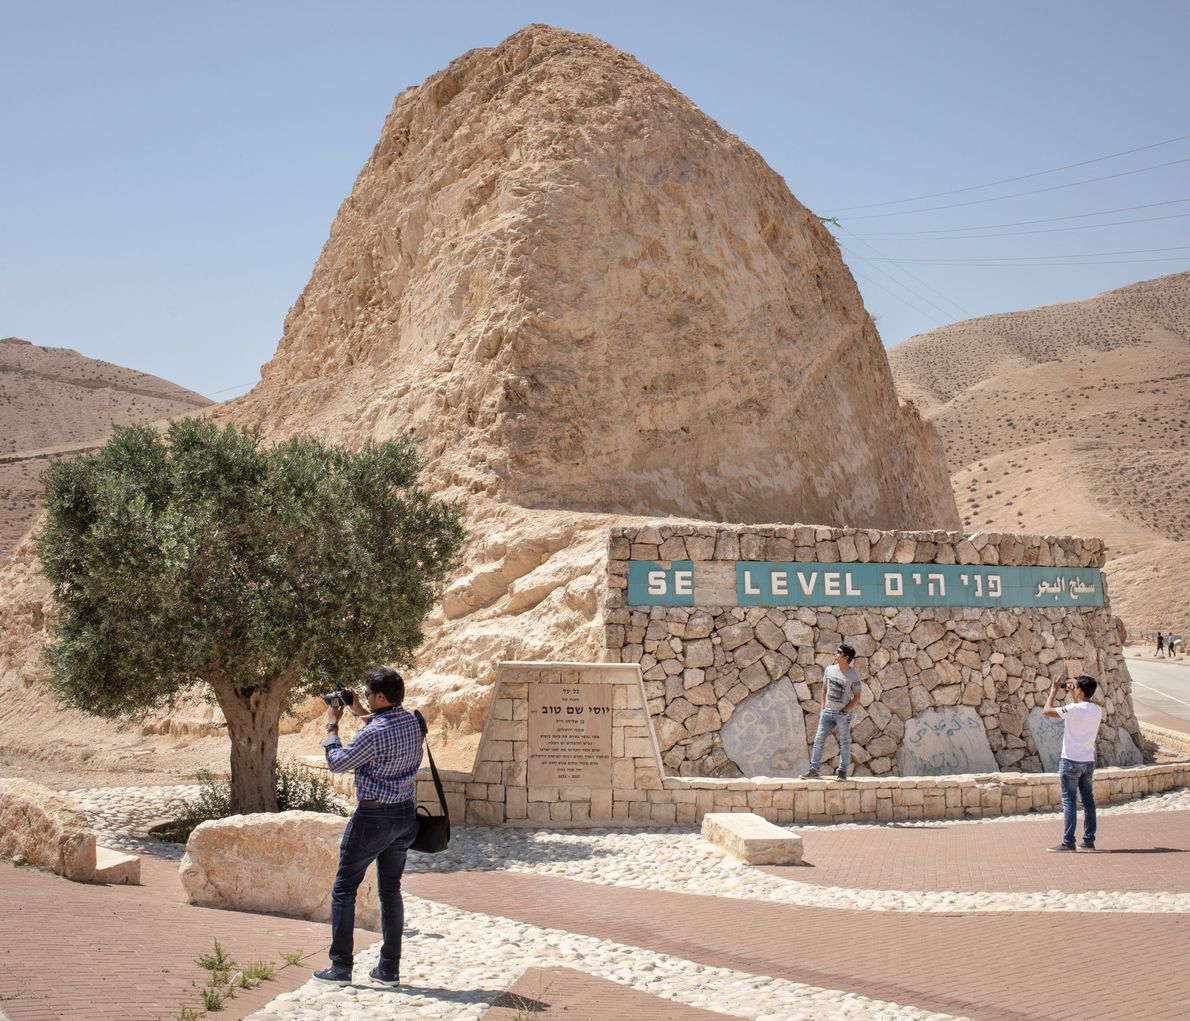 Tourists take pictures under the line that marks zero feet above sea level.